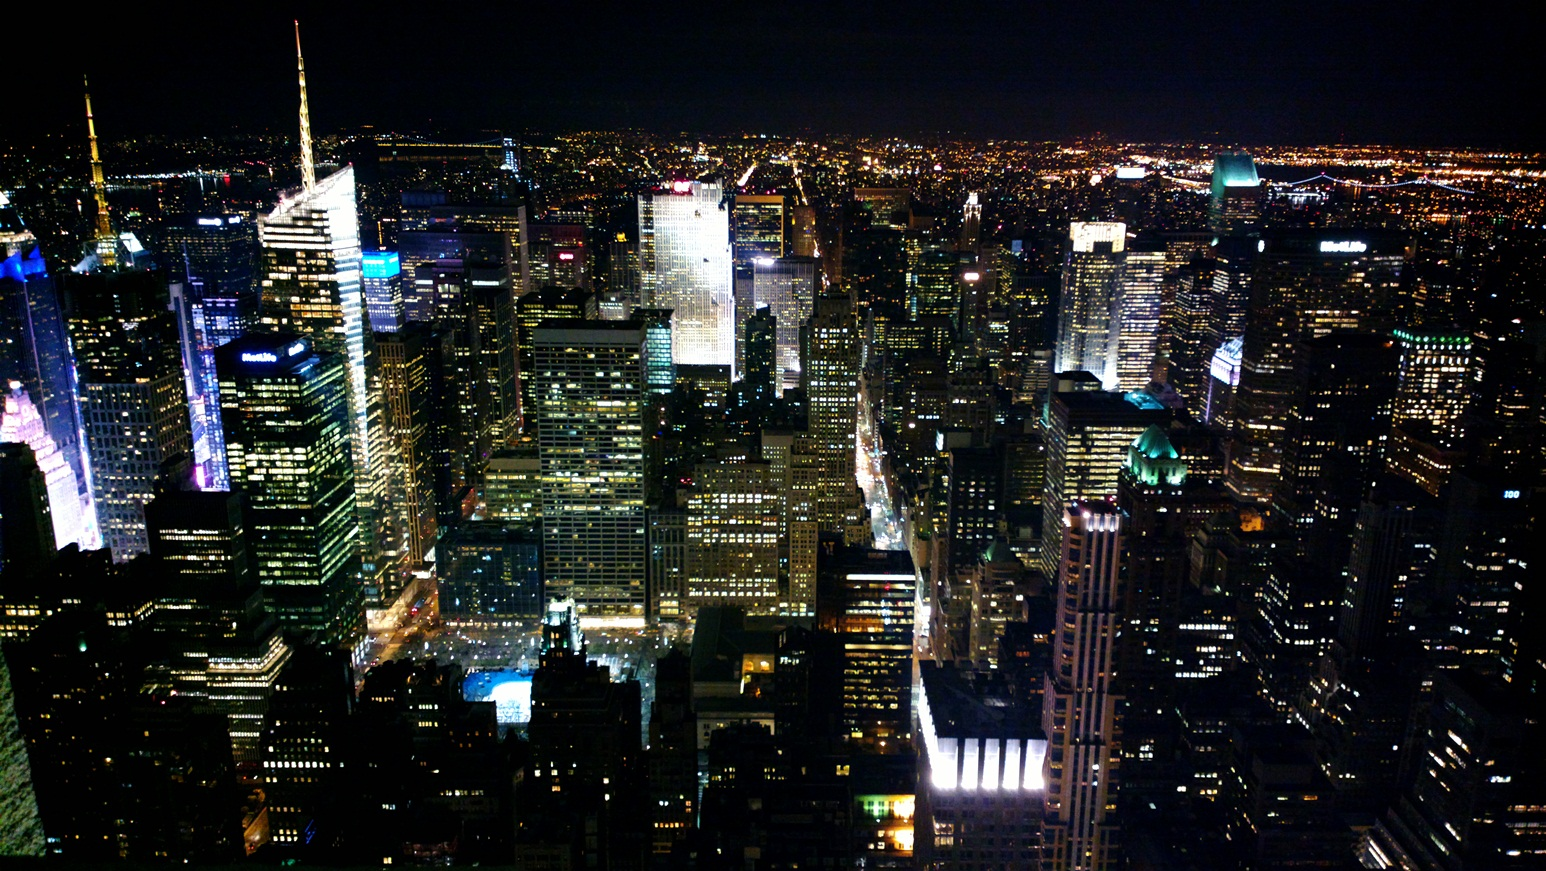 NY from the Empire State, 86 floor.